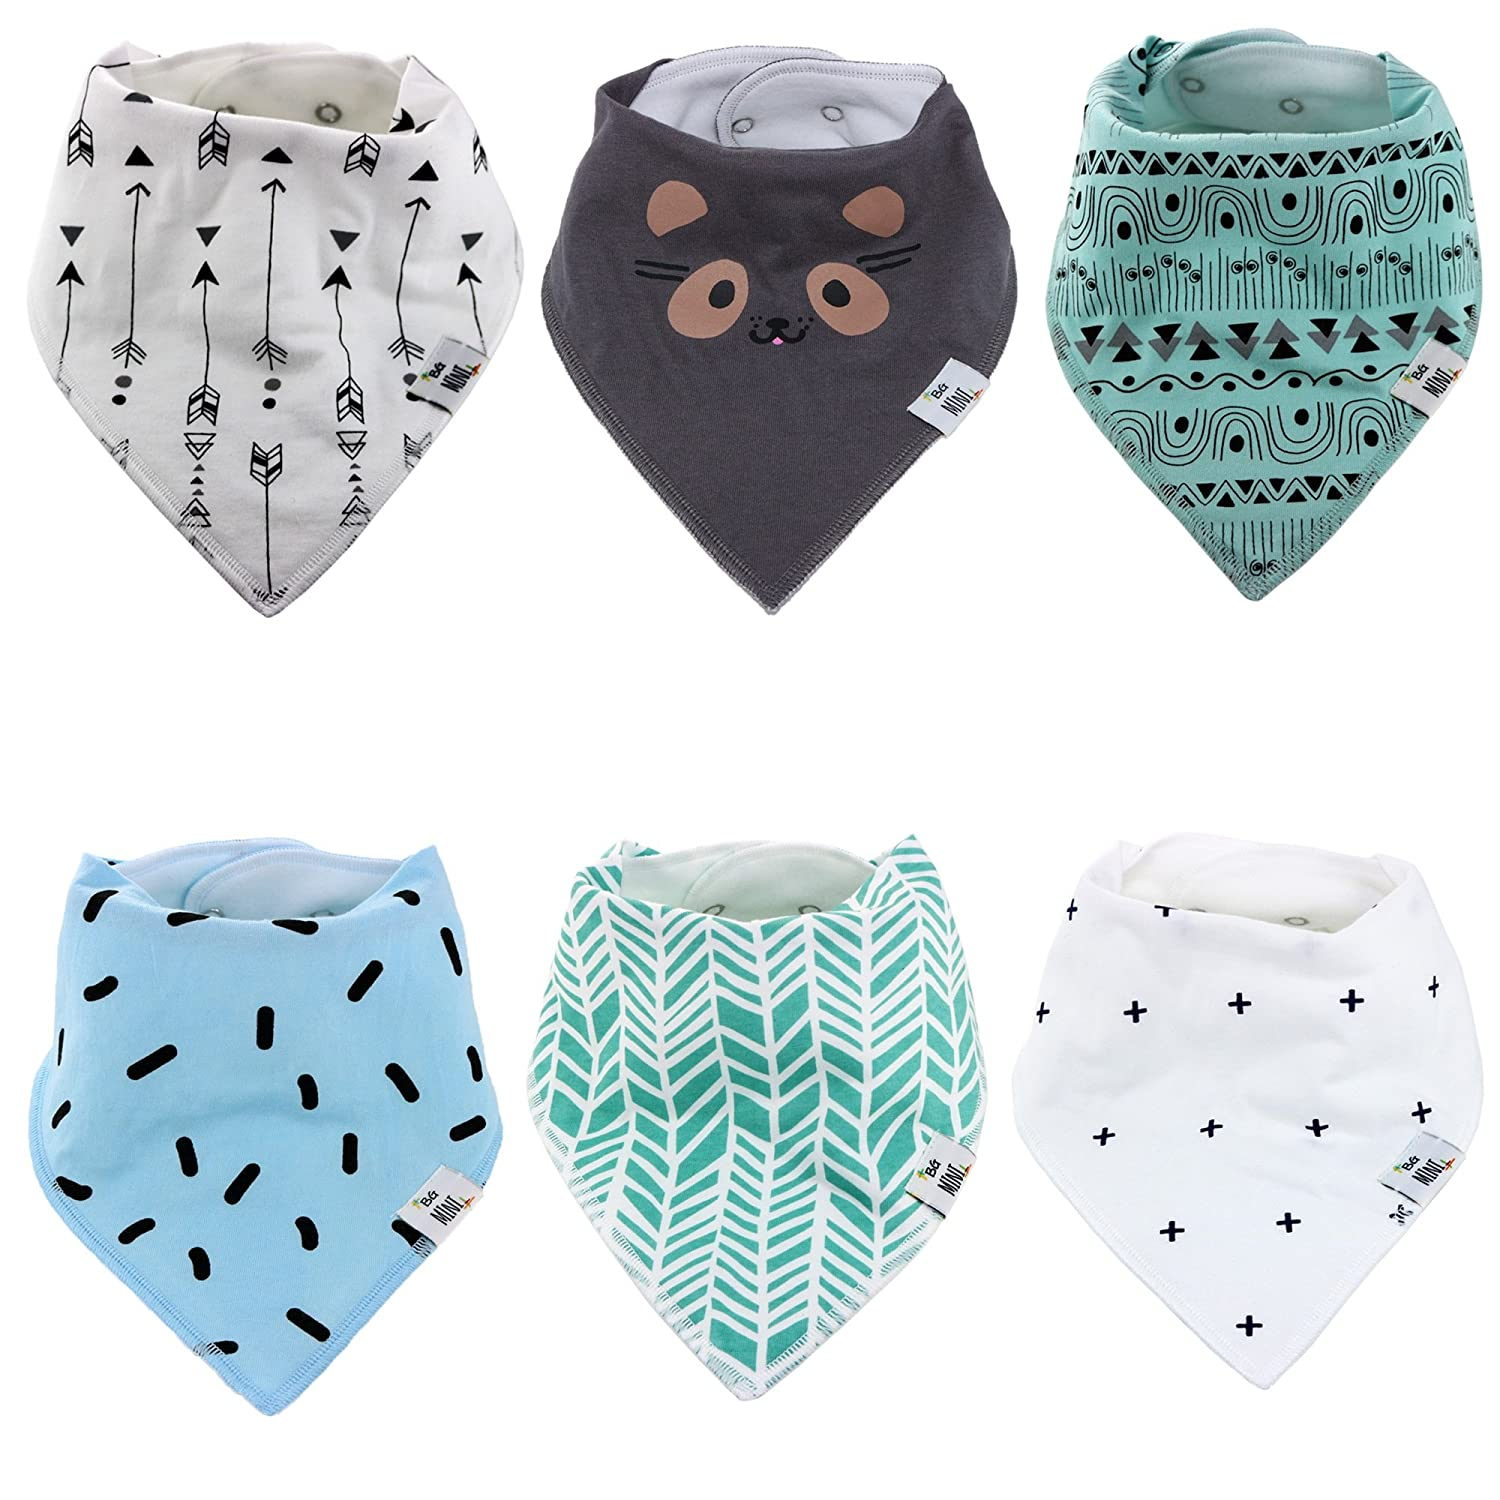 Baby Bandana Drool Bibs for Drooling and Teething - By BG Mini 6 Pack for boys or Gilrs Soft Absorbent 100% Organic Cotton Perfect Bibs - Absorbent Babies & Toddlers - Shower Gift u-01